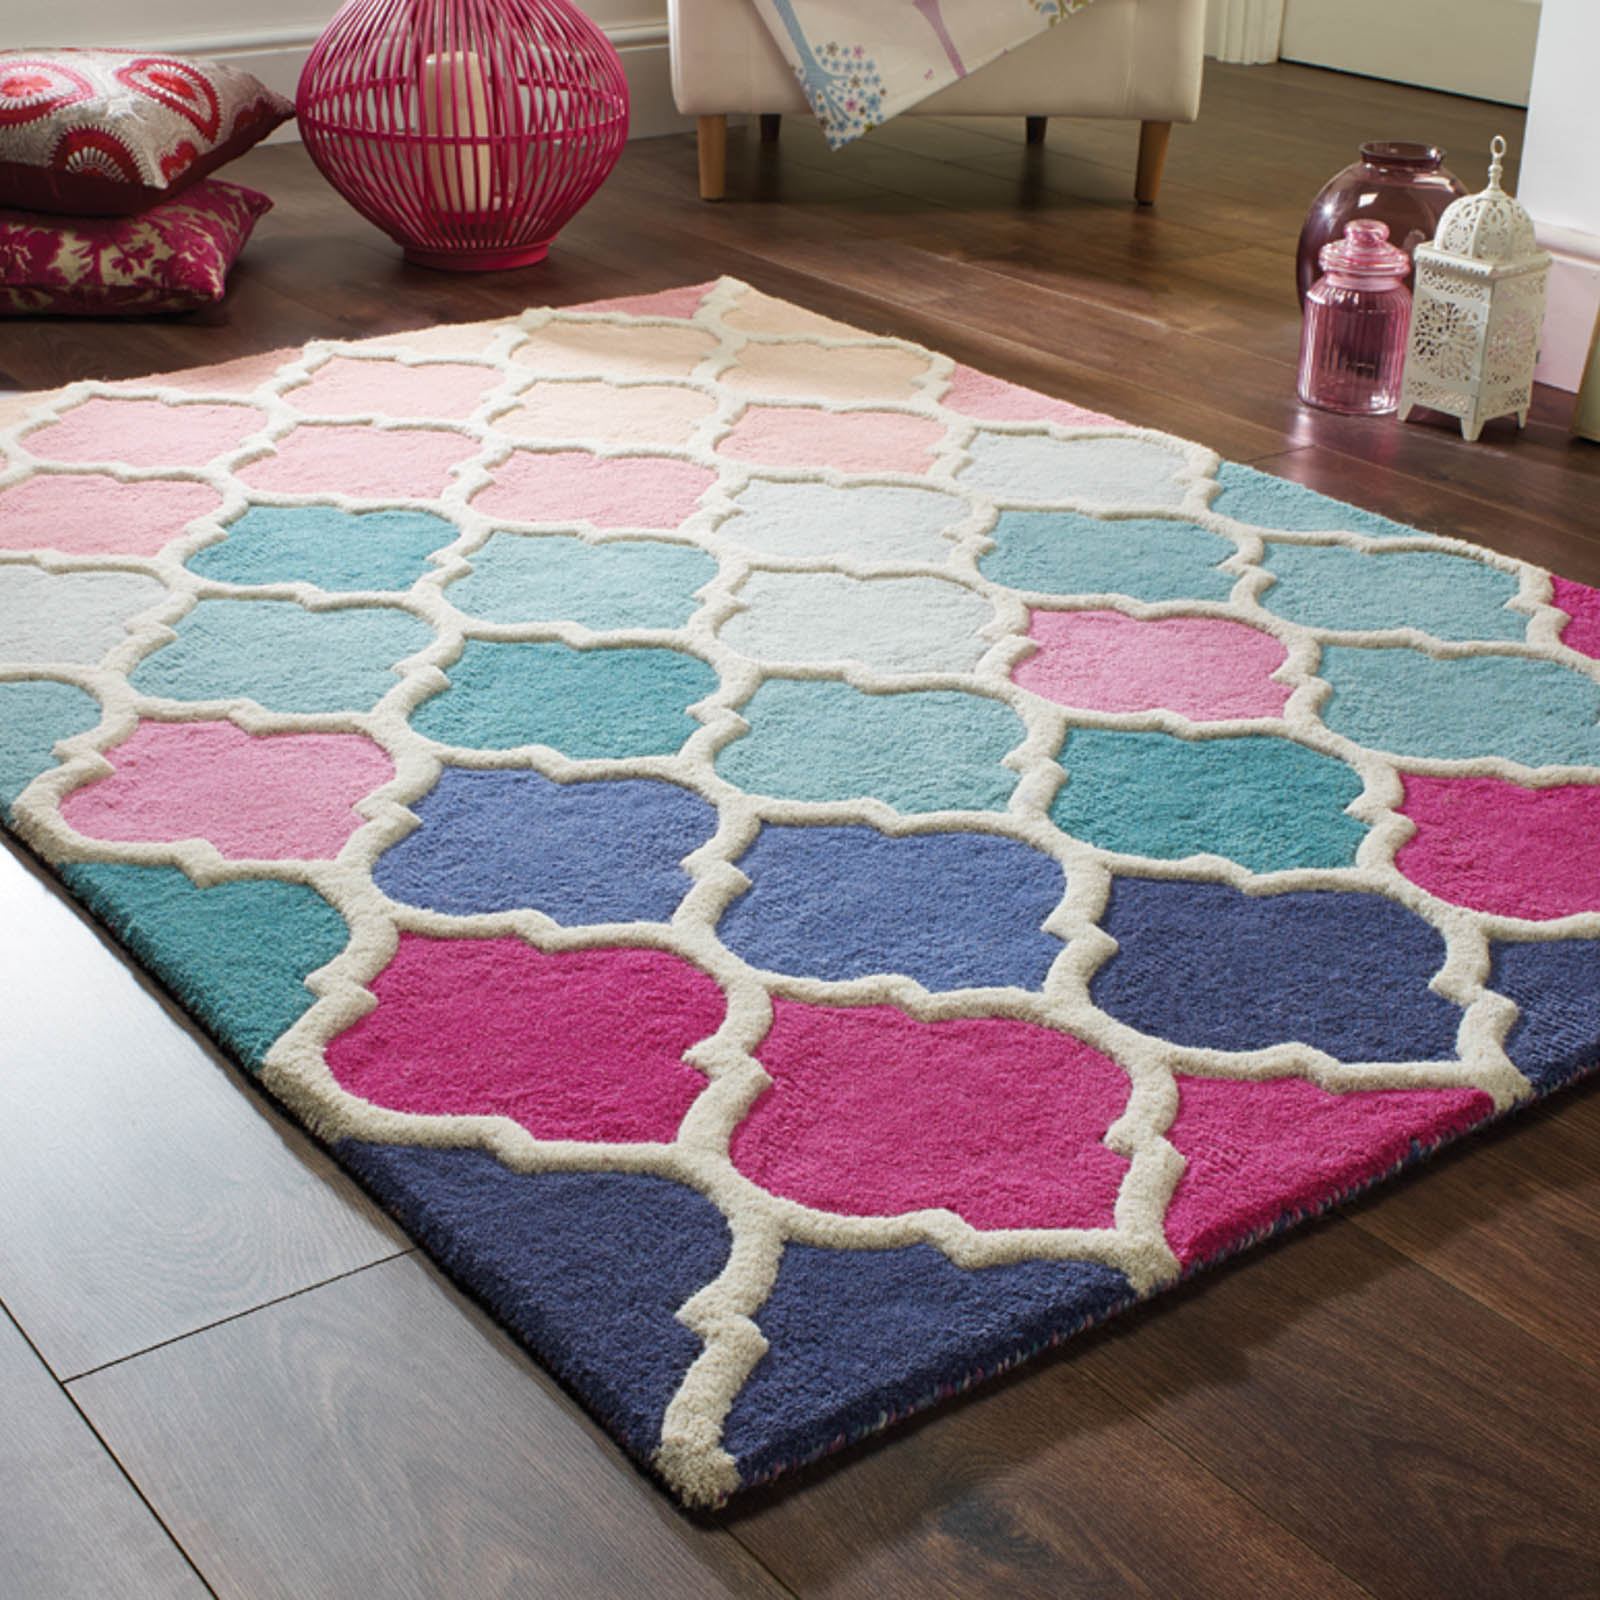 Illusion Rosella Rugs in Pink and Blue